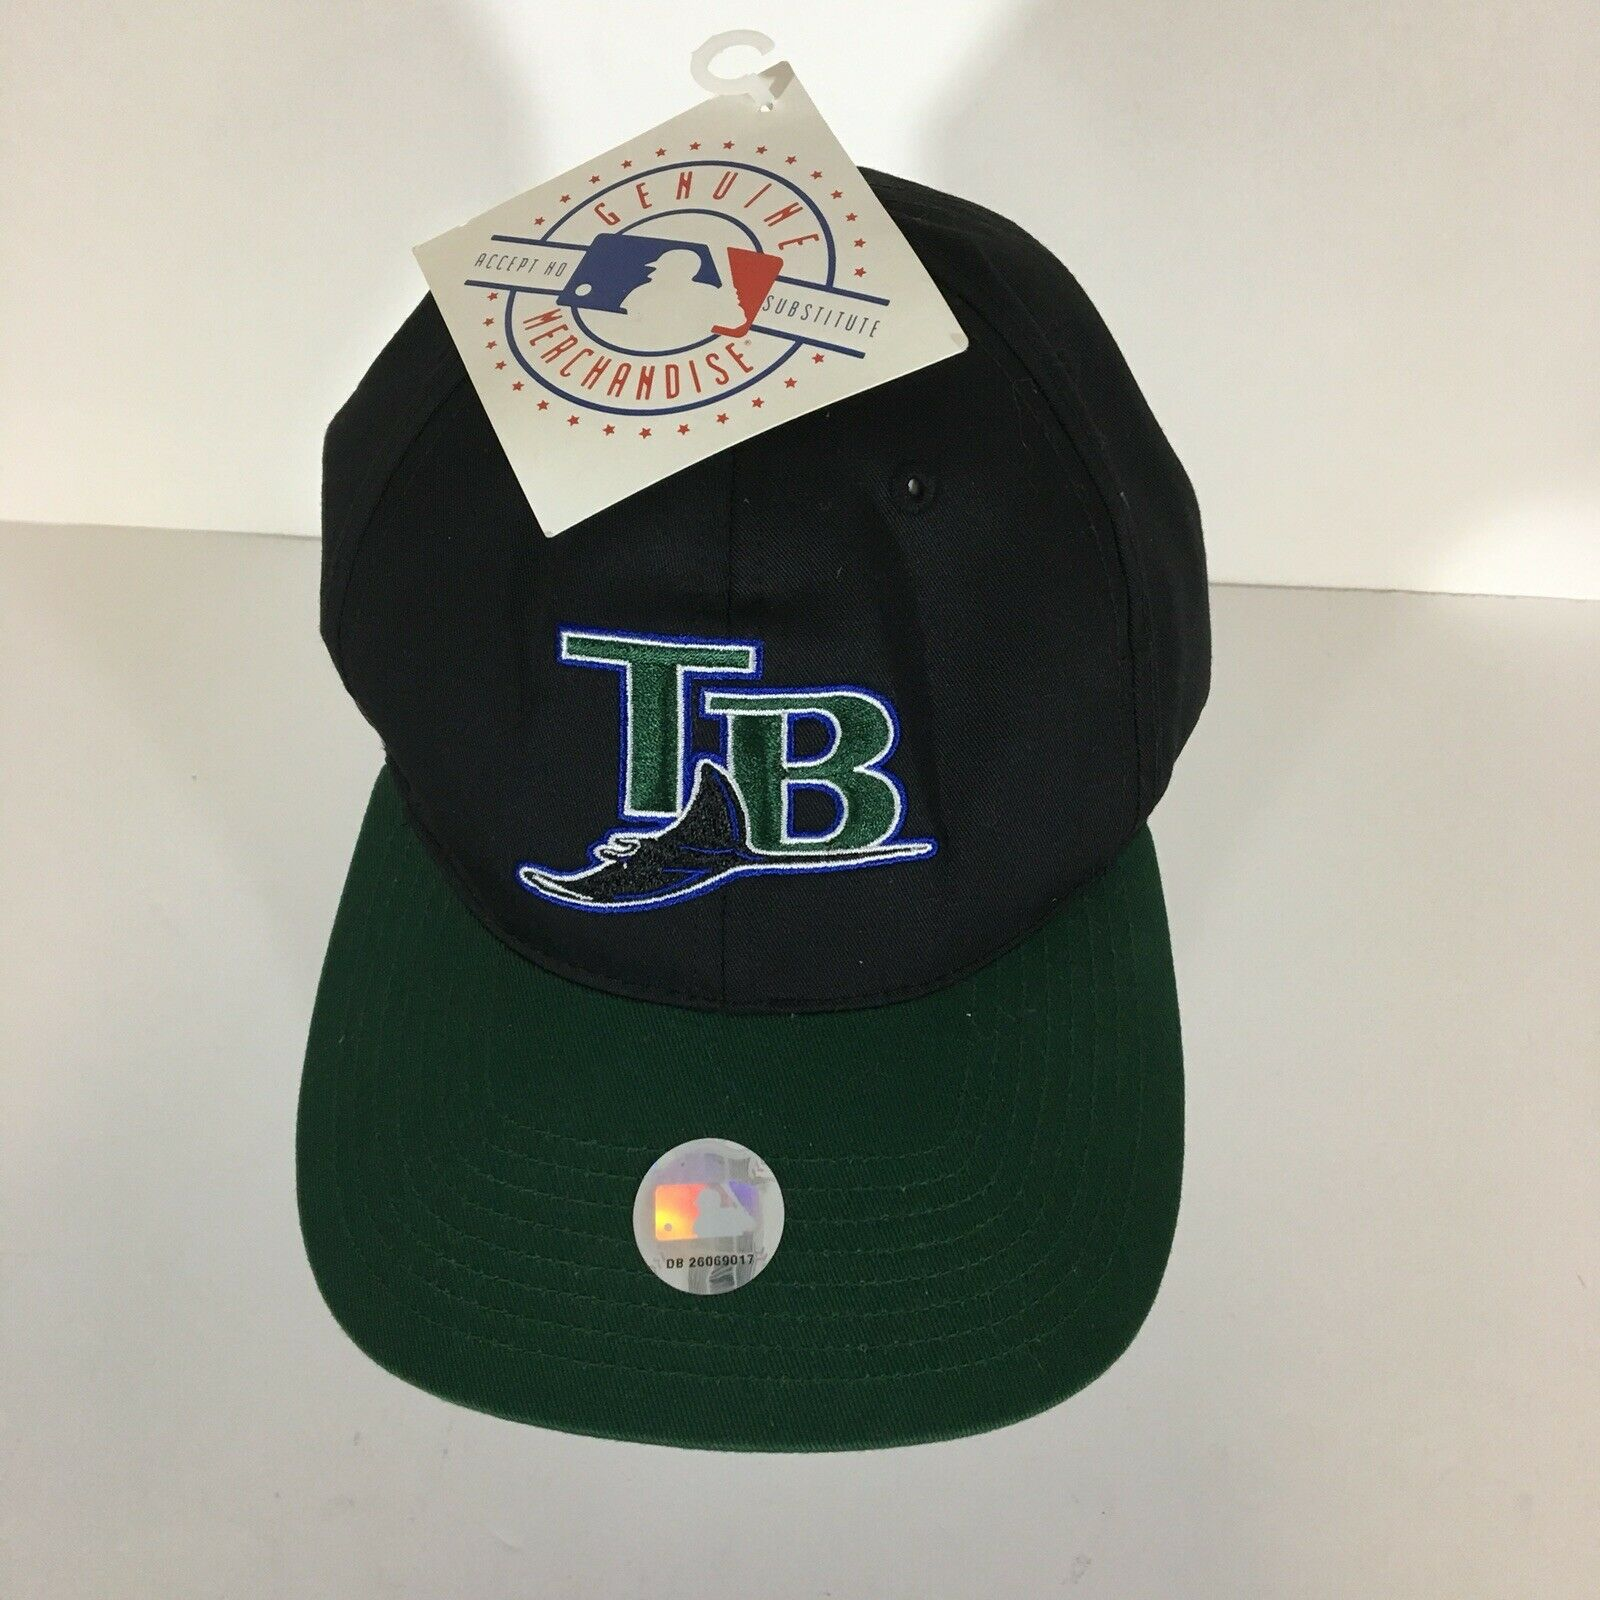 f14fcdaa476fc ... Cap UPC 053838001305 product image for Genuine Merchandise Twins  Enterprise Tampa Bay Devil Rays Vintage One Size